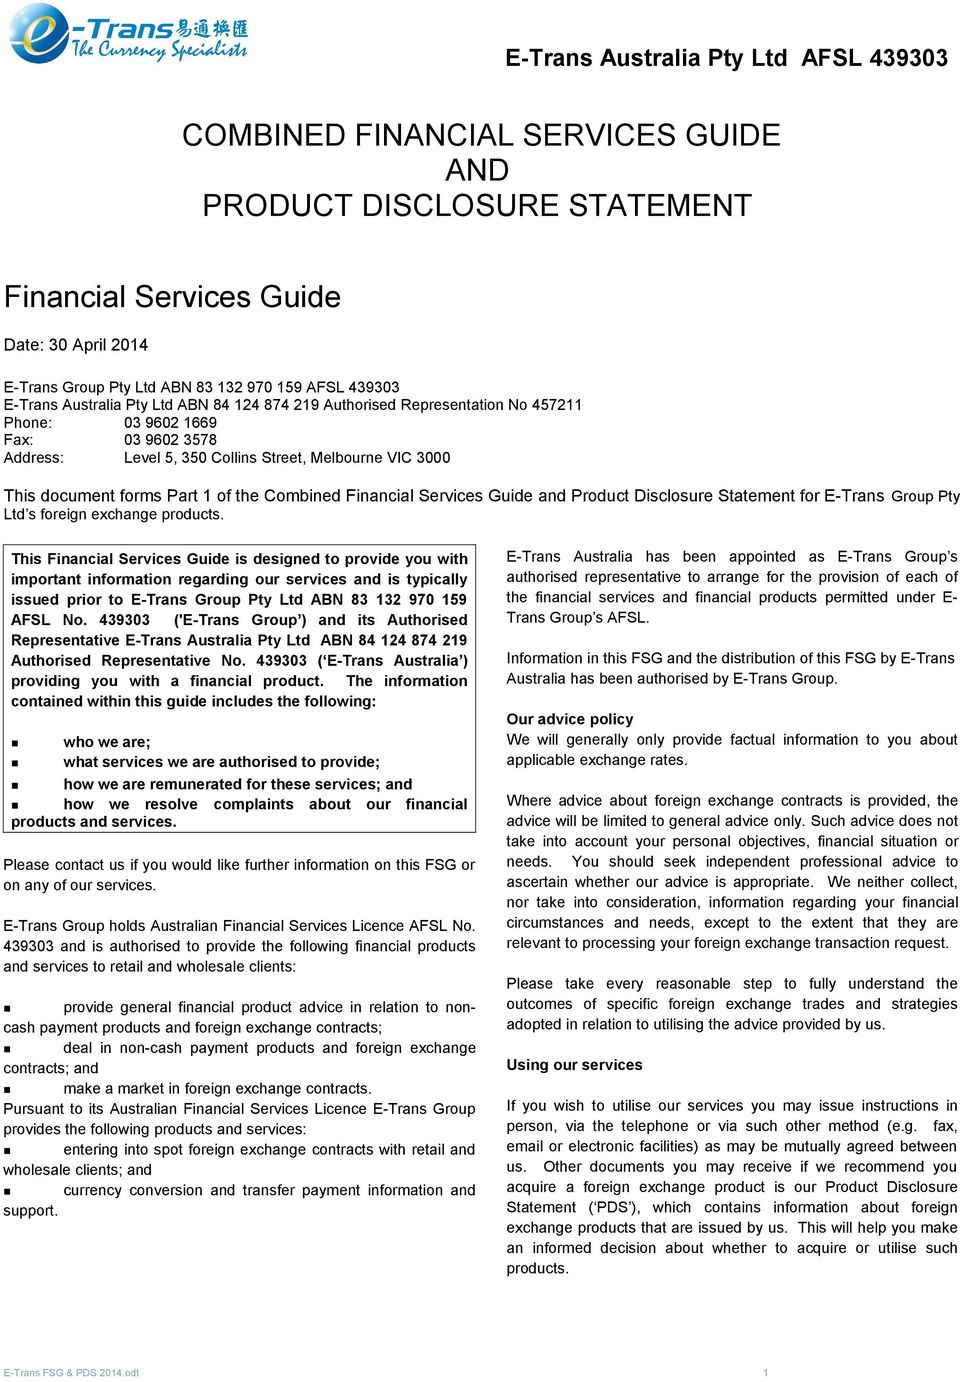 forms Part 1 of the Combined Financial Services Guide and Product Disclosure Statement for E-Trans Group Pty Ltd s foreign products.